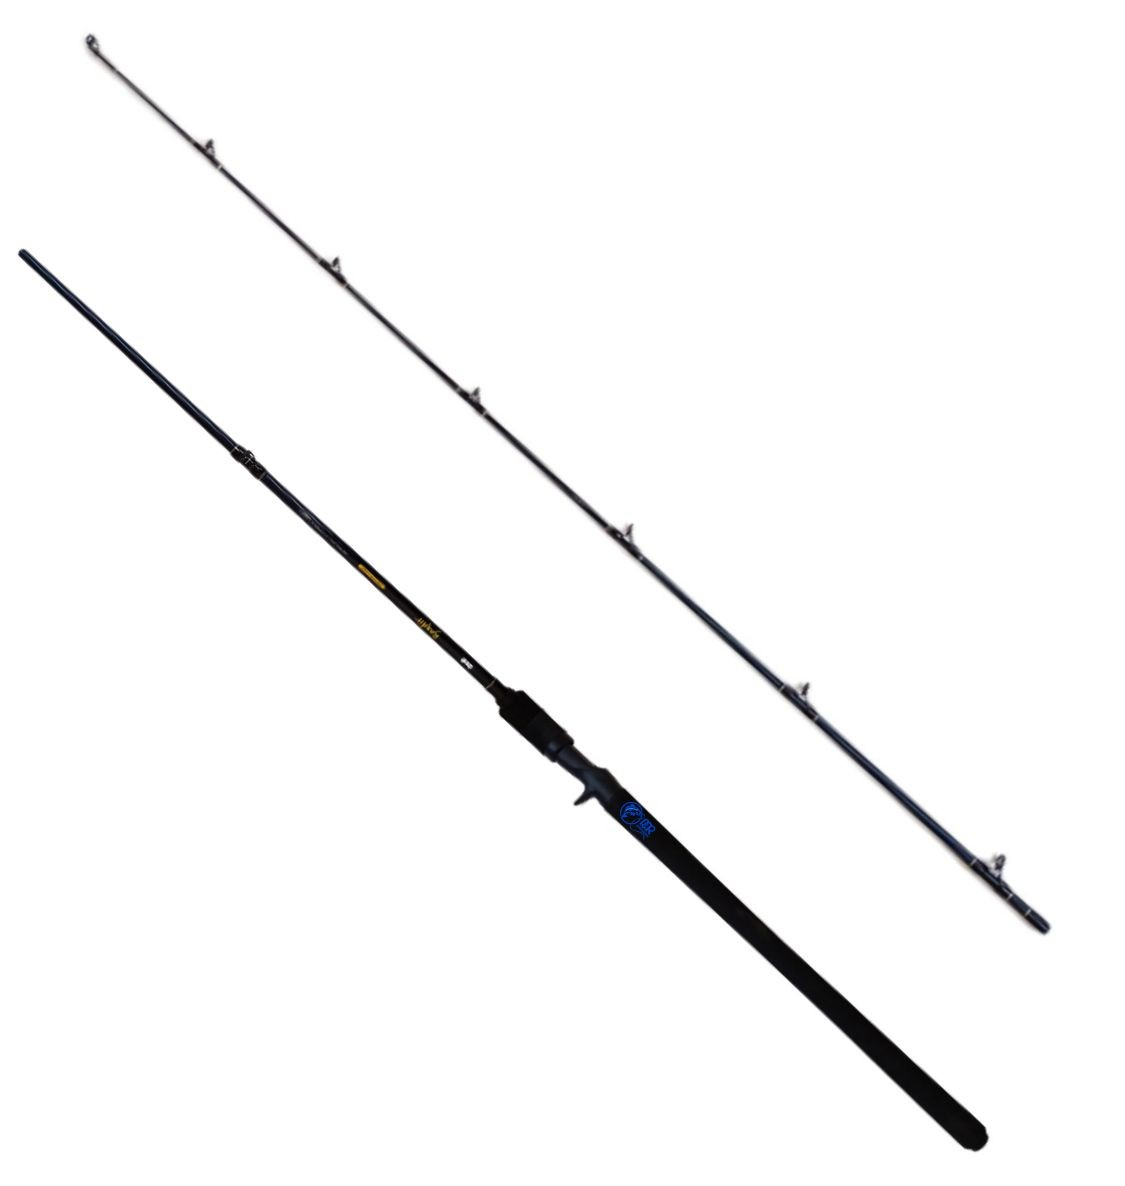 Vara Carretilha Bandit Power Cast 2.74m 15-50b 2 Parte Celta